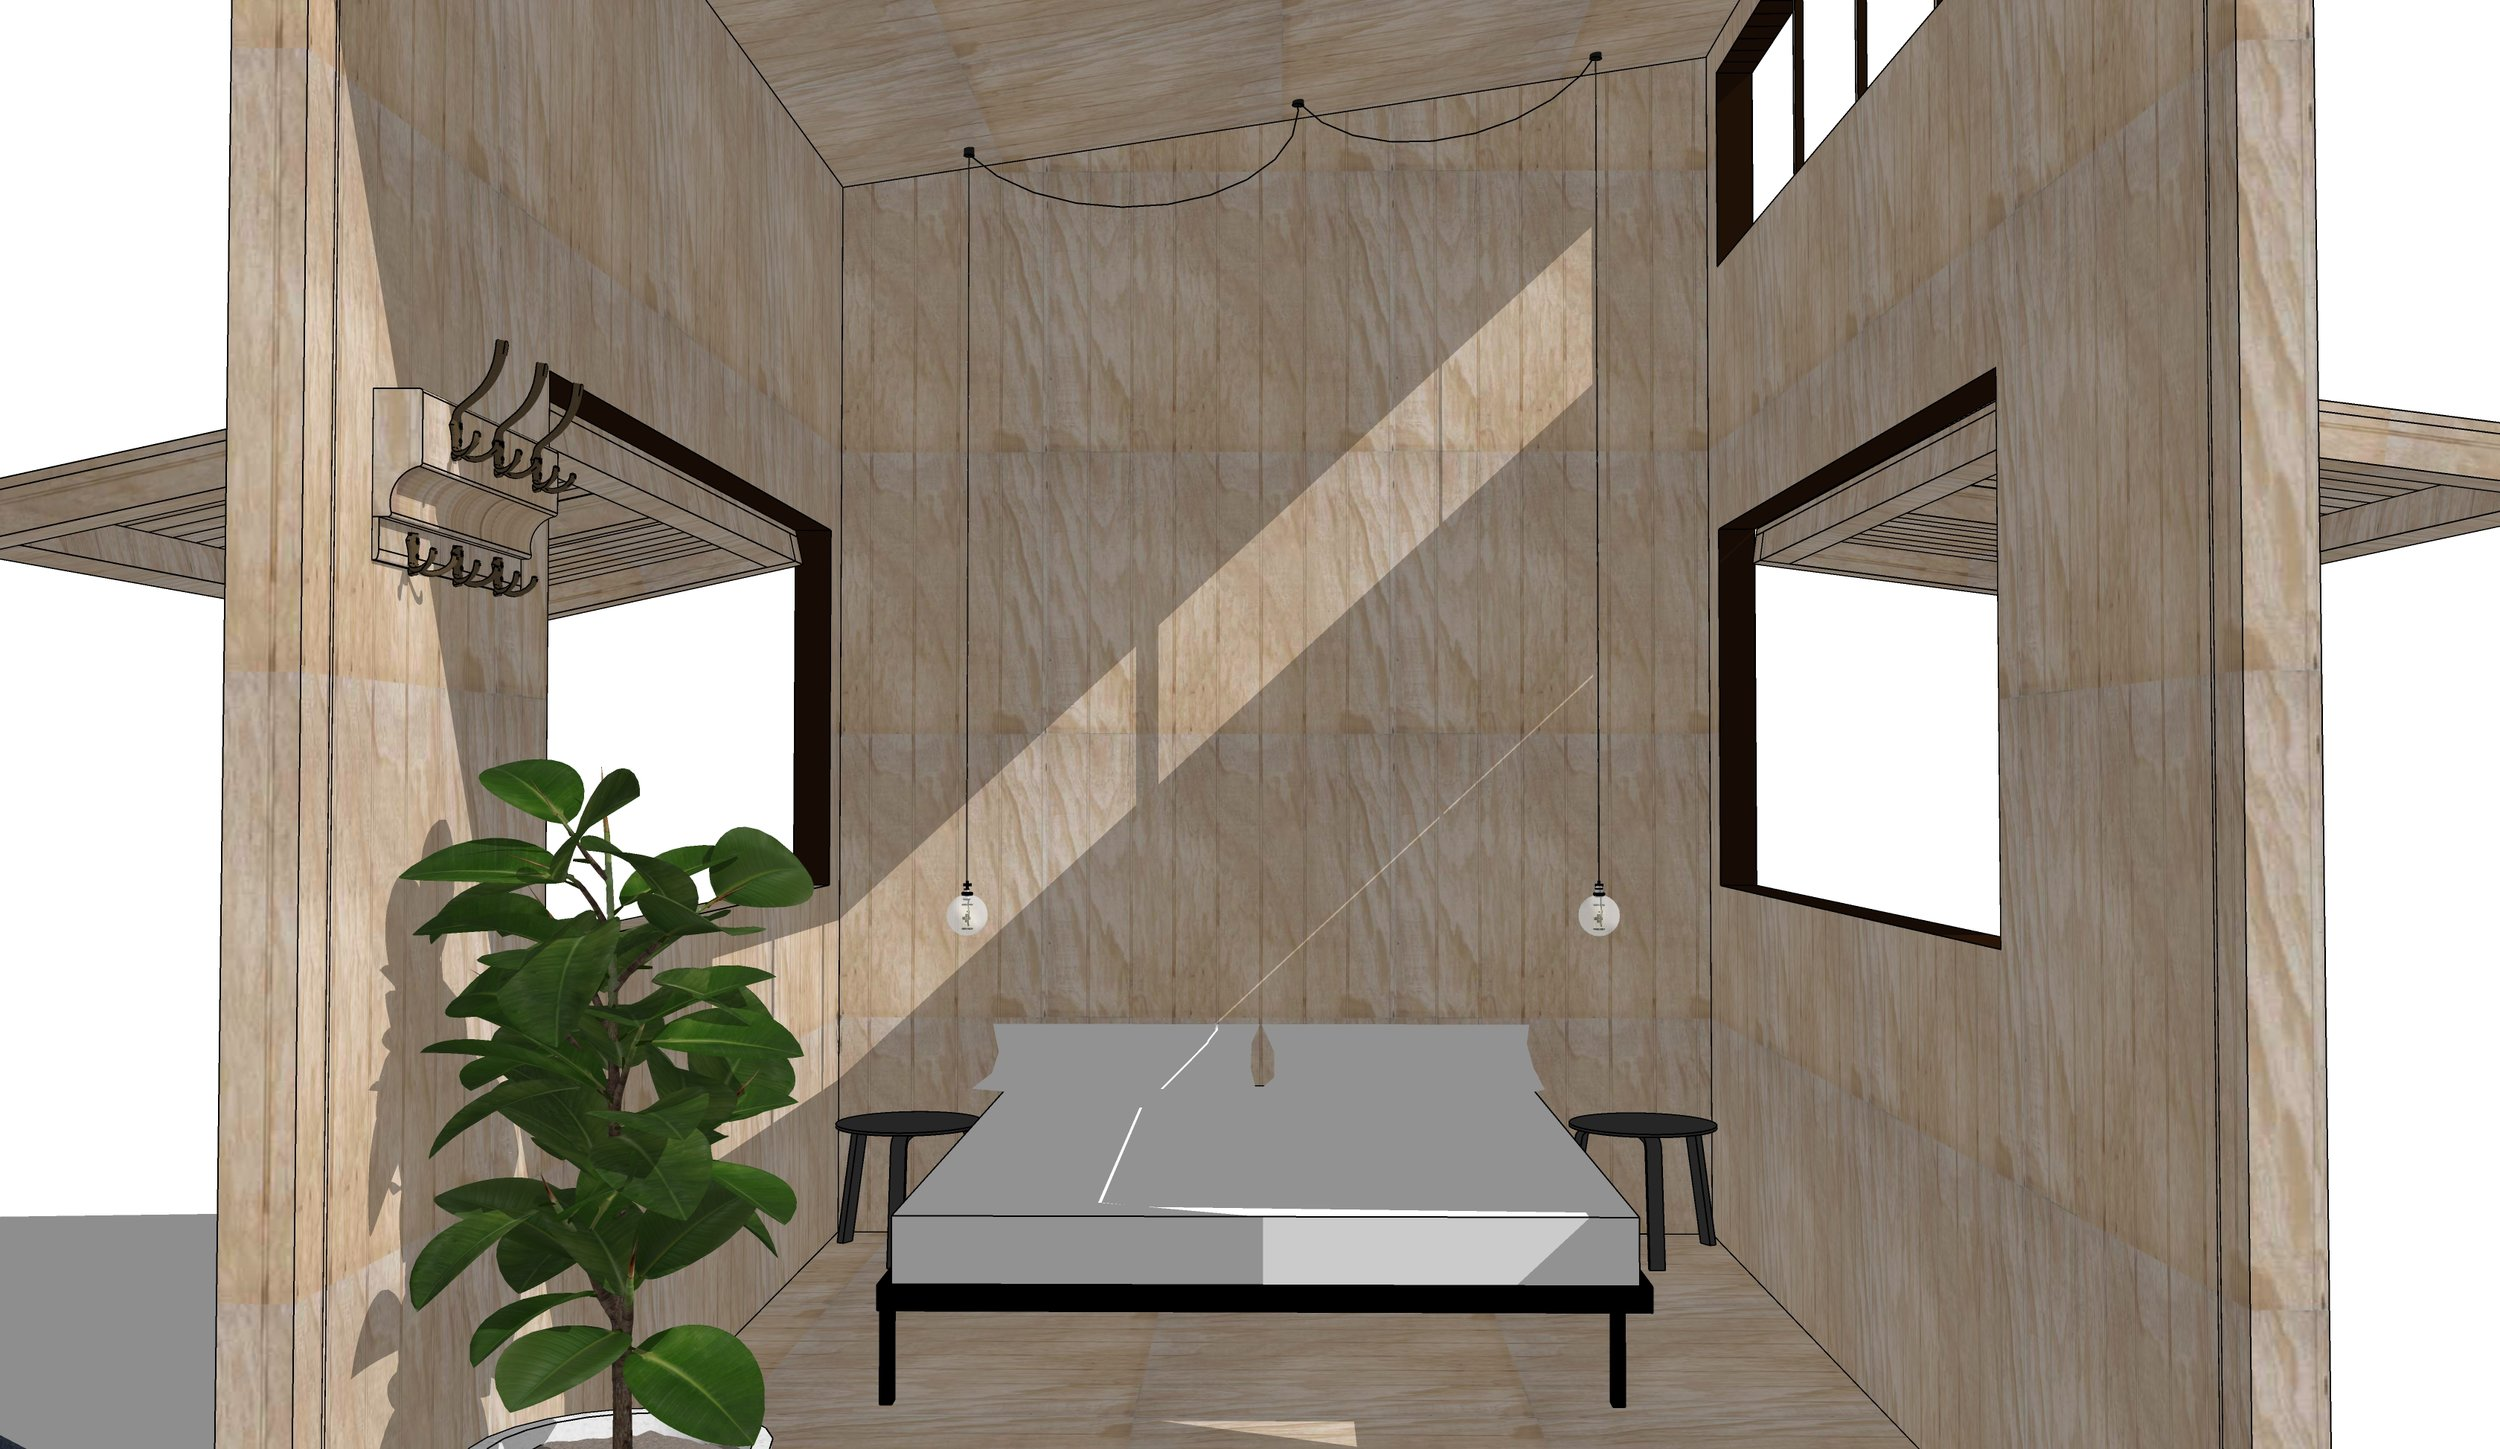 01.   This design is intended to be a simple, light, open space for people to relax in and appreciate the beauty of natural timber.   The statement fold-down deck/entrance needs further engineering to function smoothly.